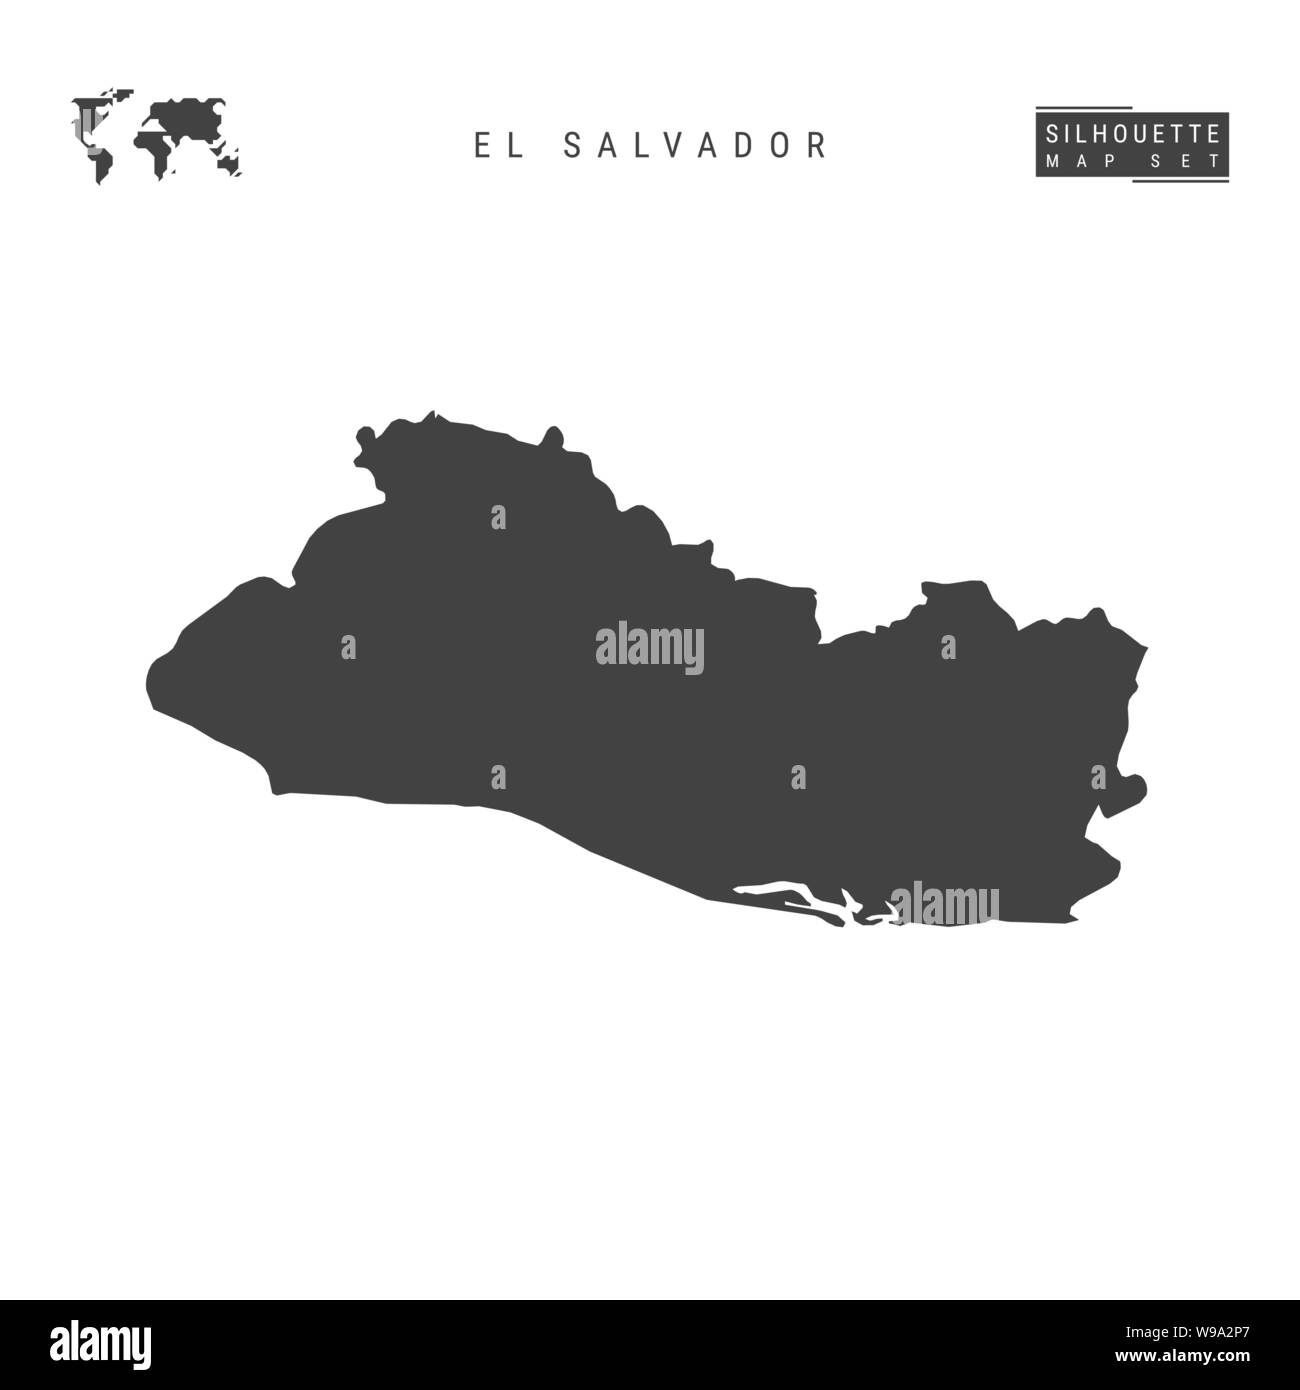 El Salvador Blank Vector Map Isolated on White Background ...